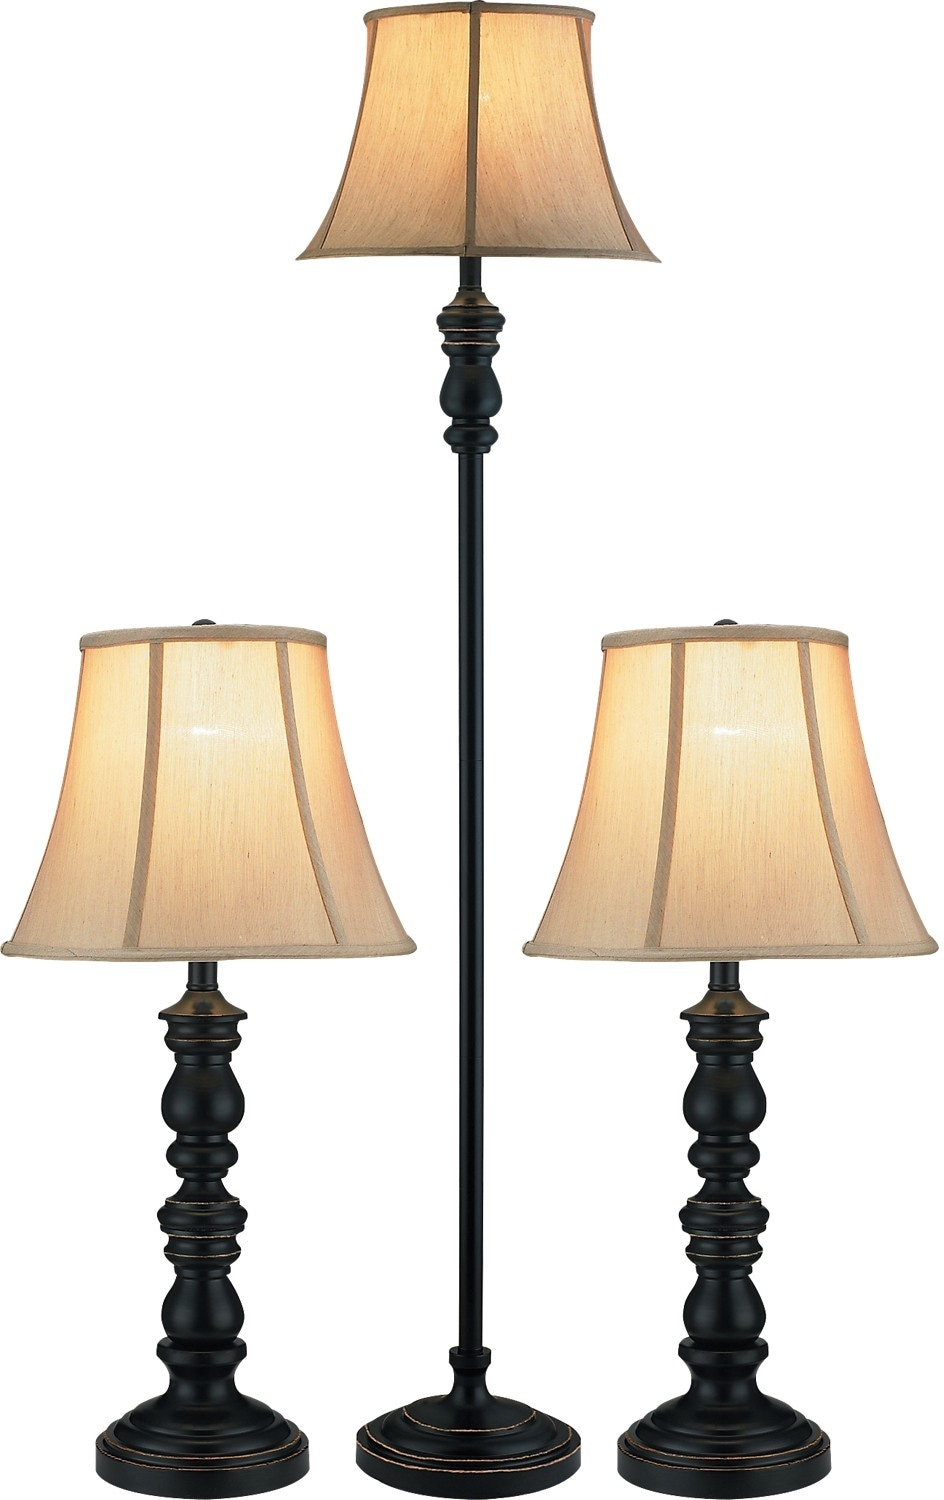 Home Accessories - Black with Gold Accents 3-Piece Floor and Two Table Lamps Set